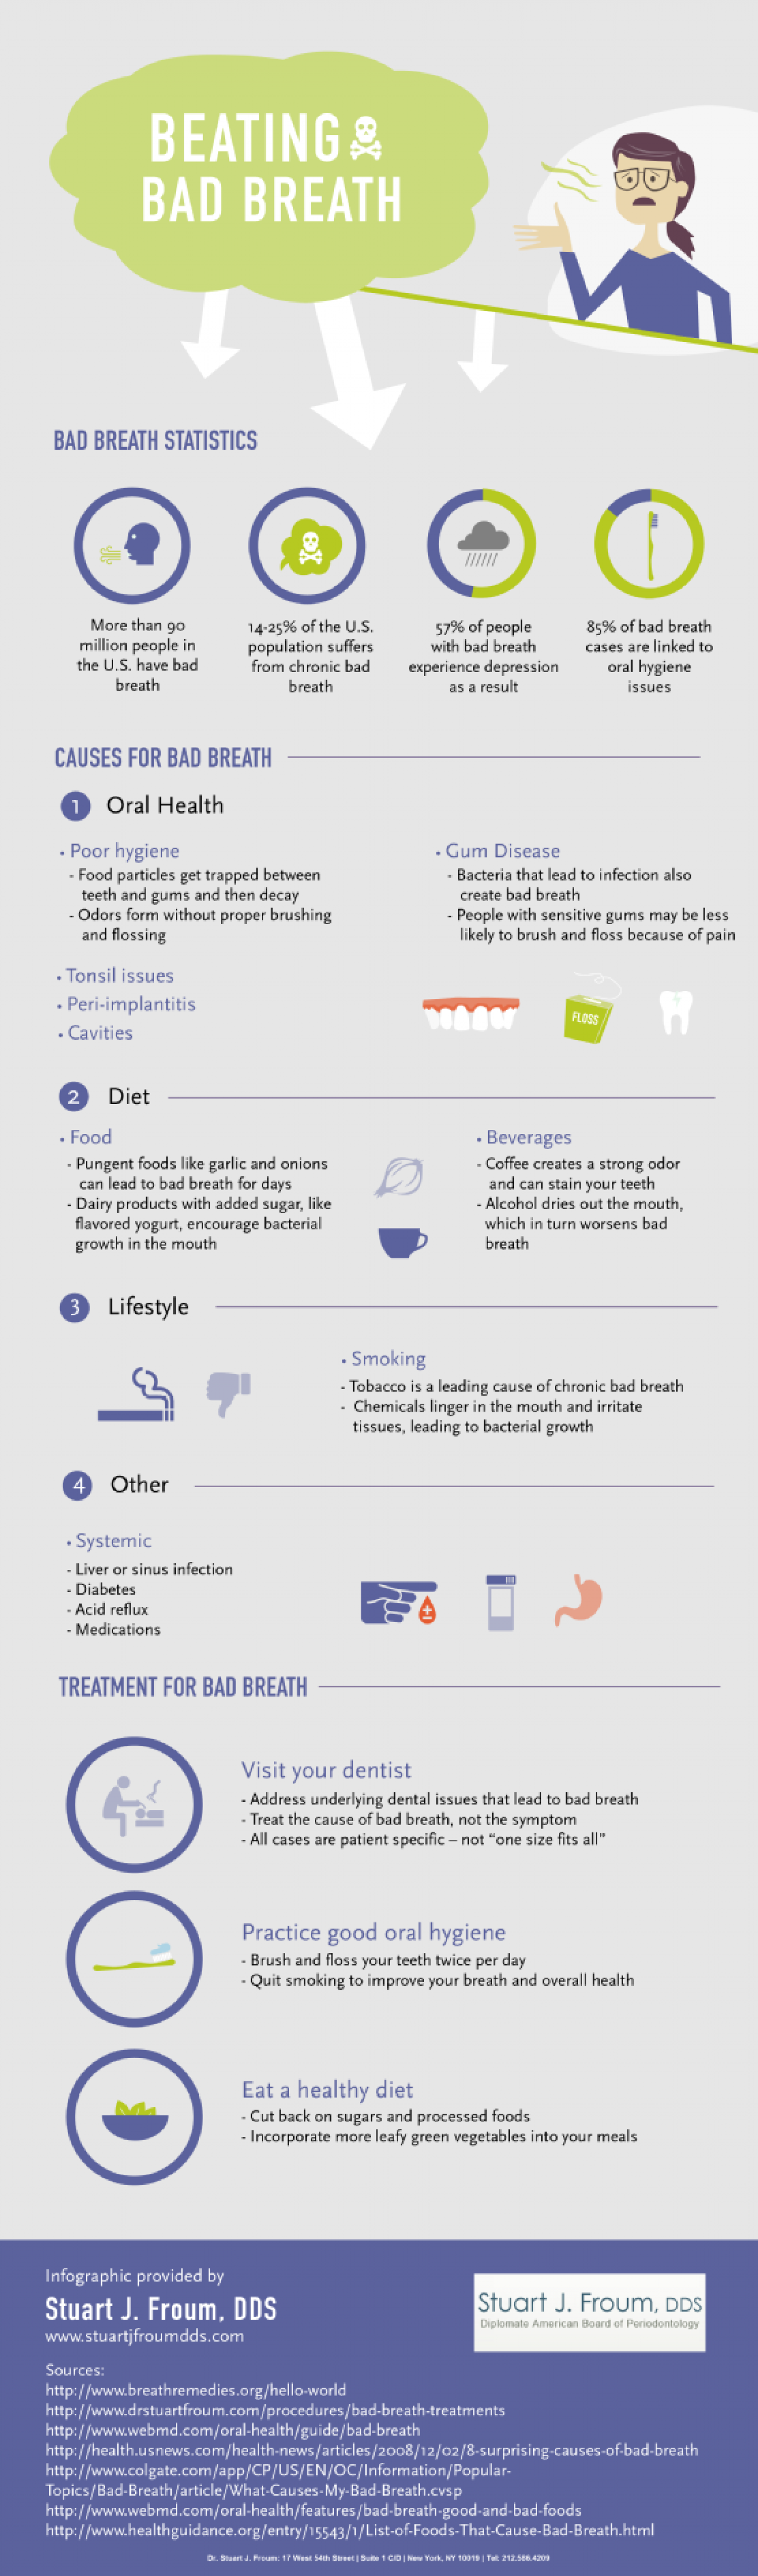 Beating Bad Breath Infographic